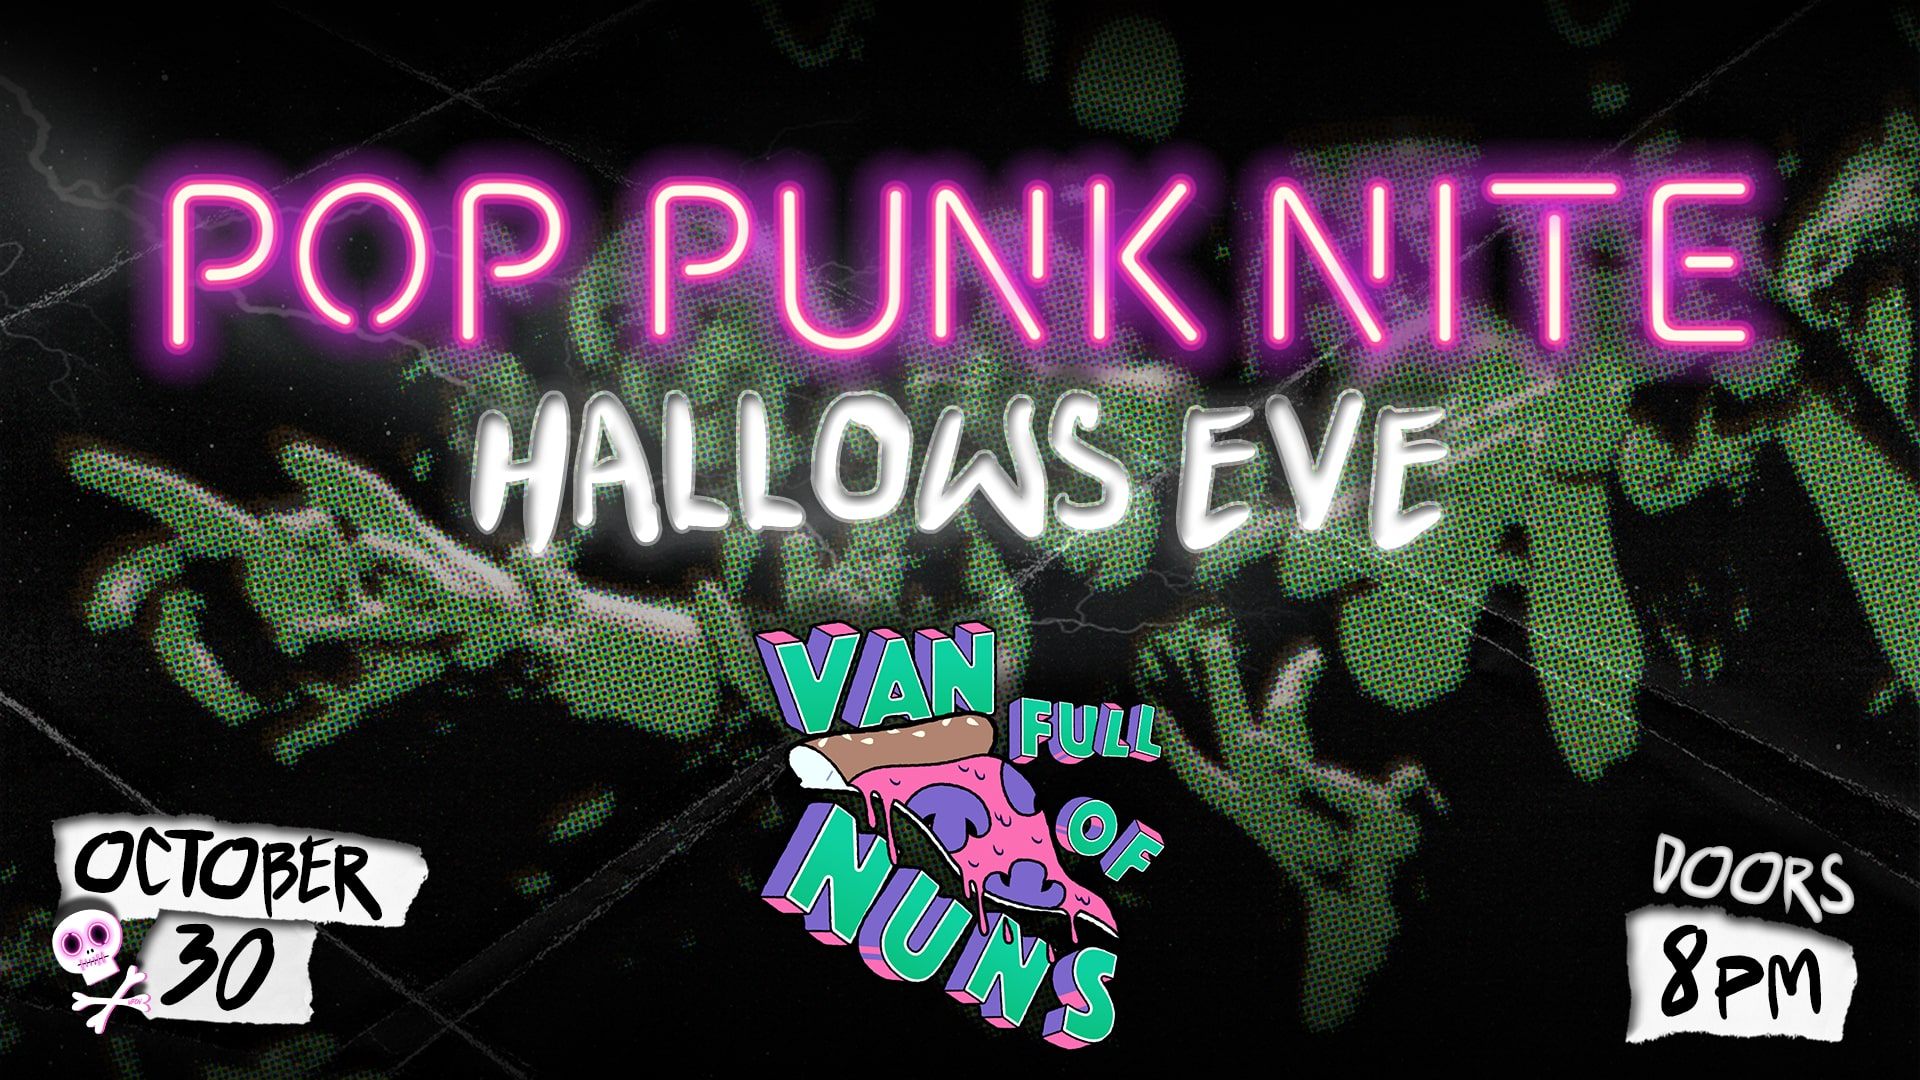 Promo image of Pop Punk Nite: Hallows Eve Party with Van Full Of Nuns